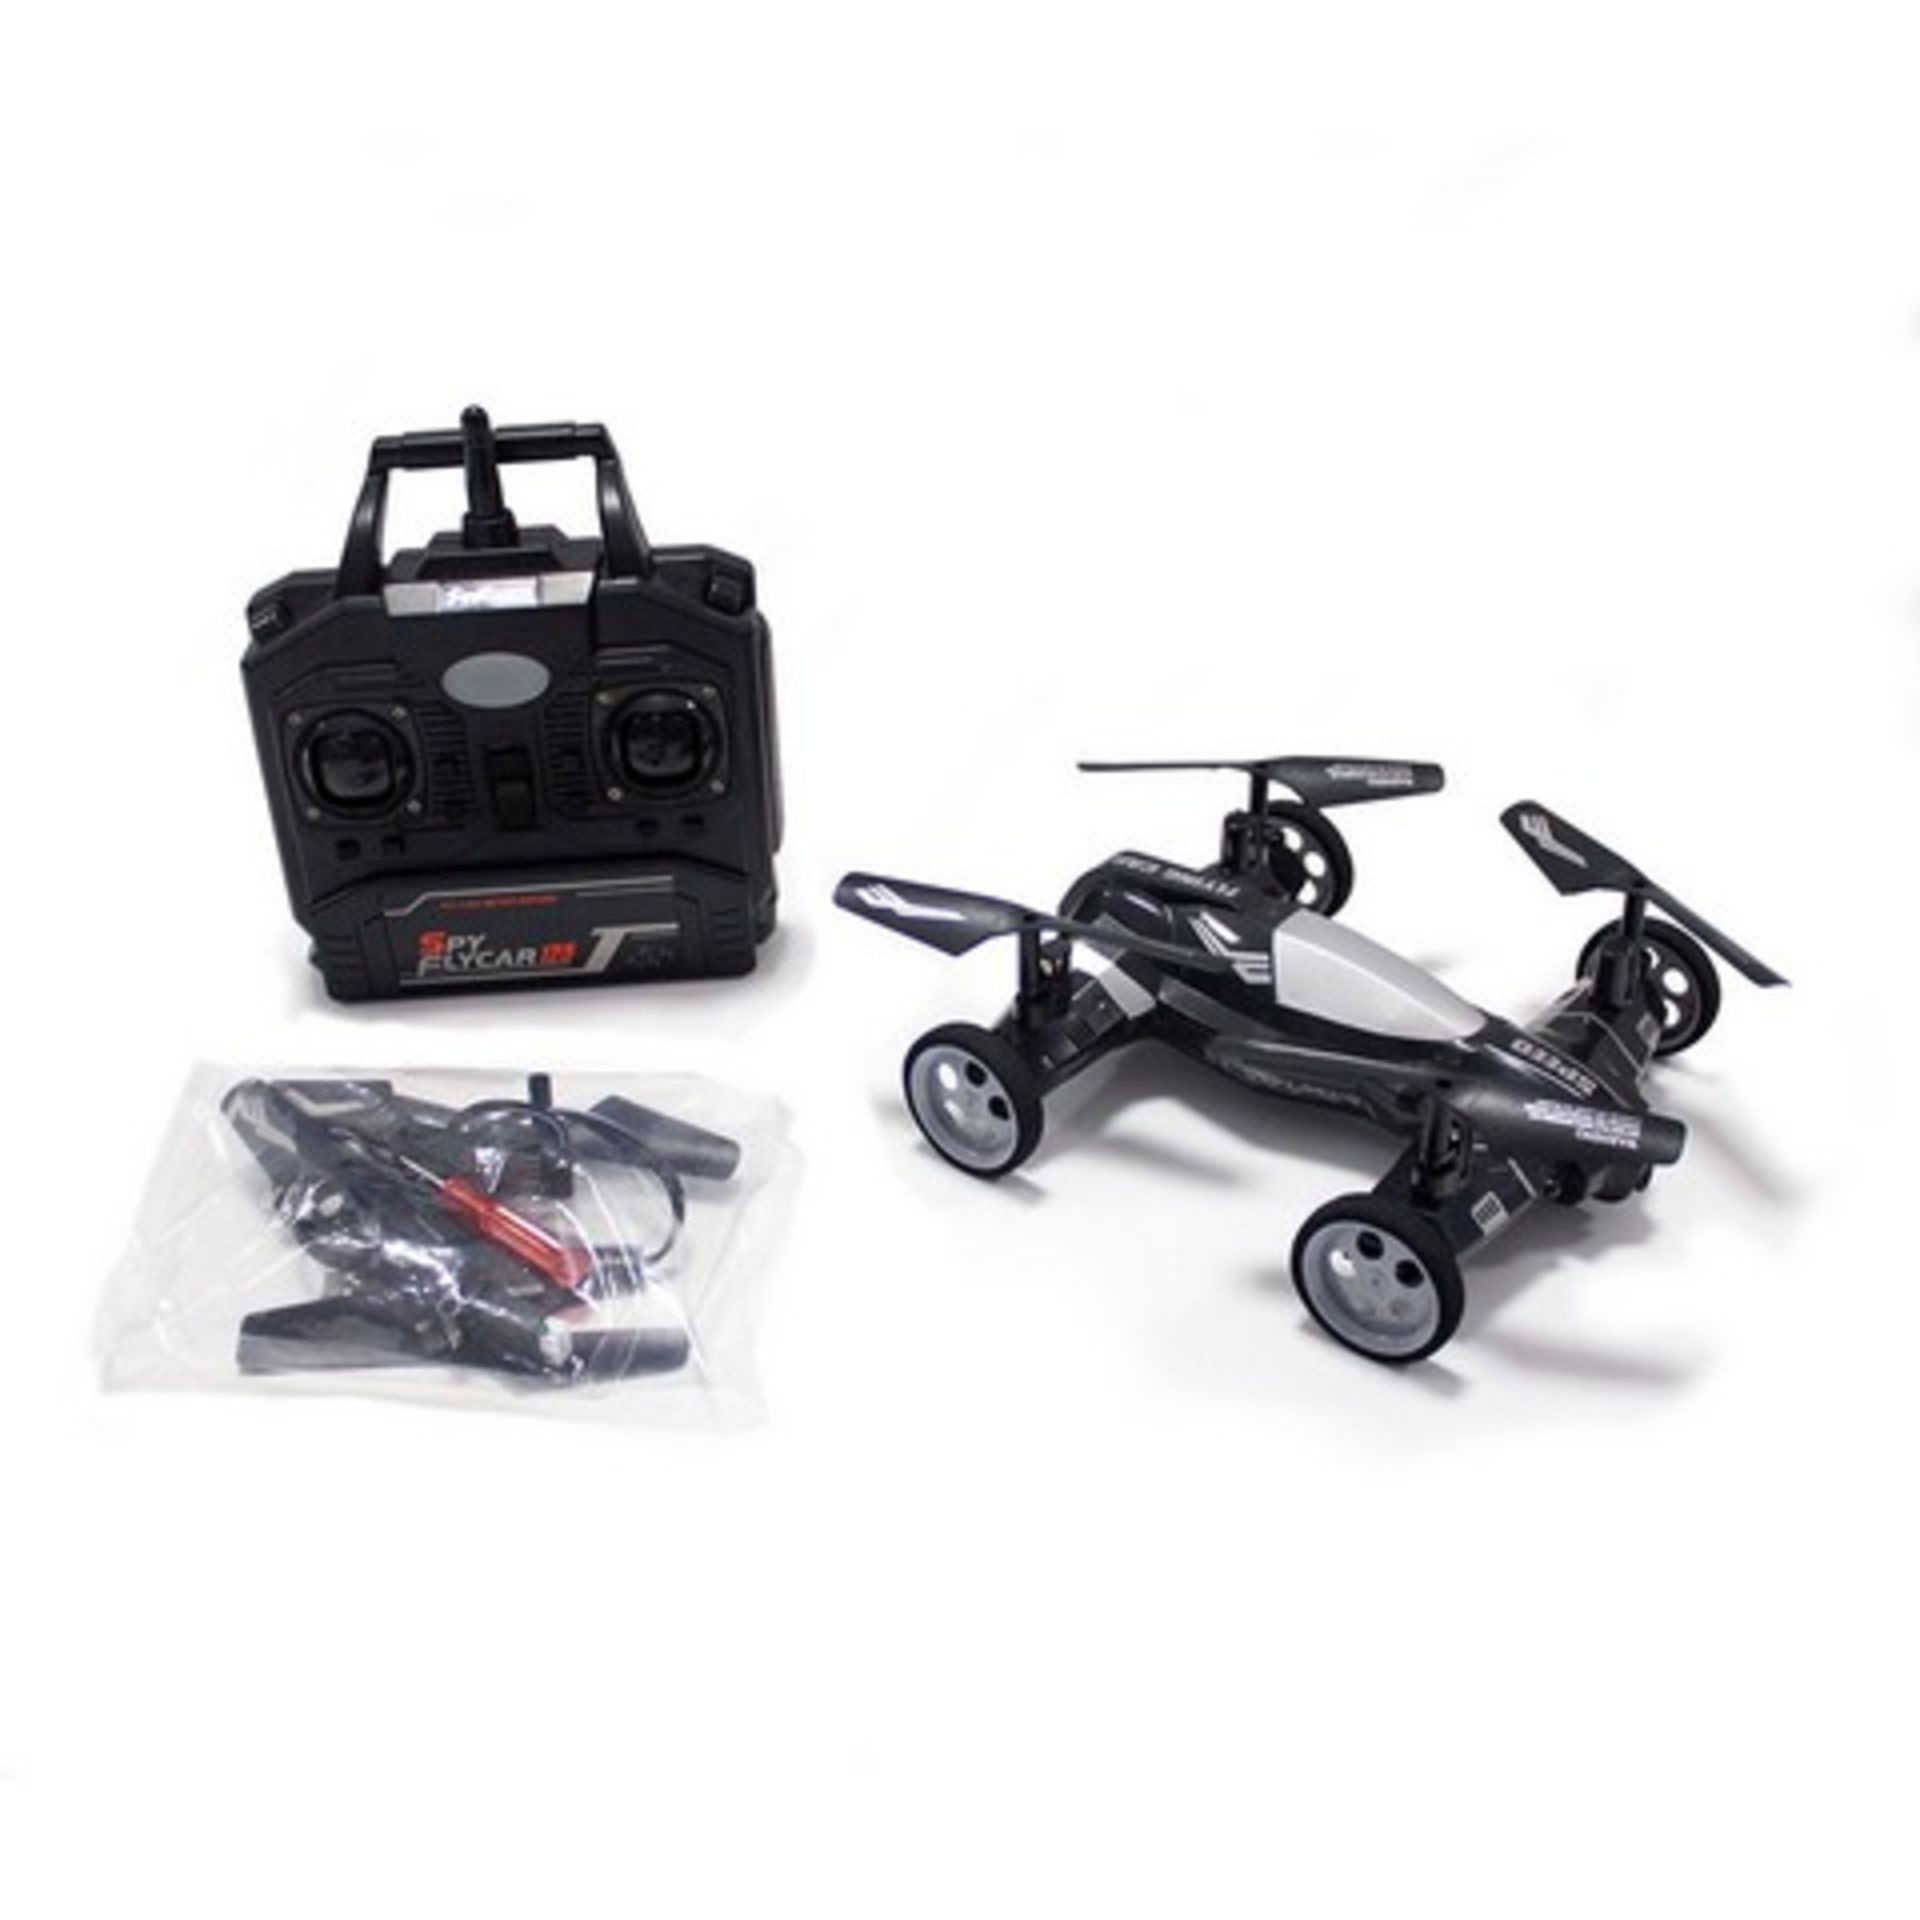 Lot 51664 - V Brand New Radio Control Quad-Copter Orbit Moon Buggy - 720P HD Camera - 4GB Micro SD Card Included